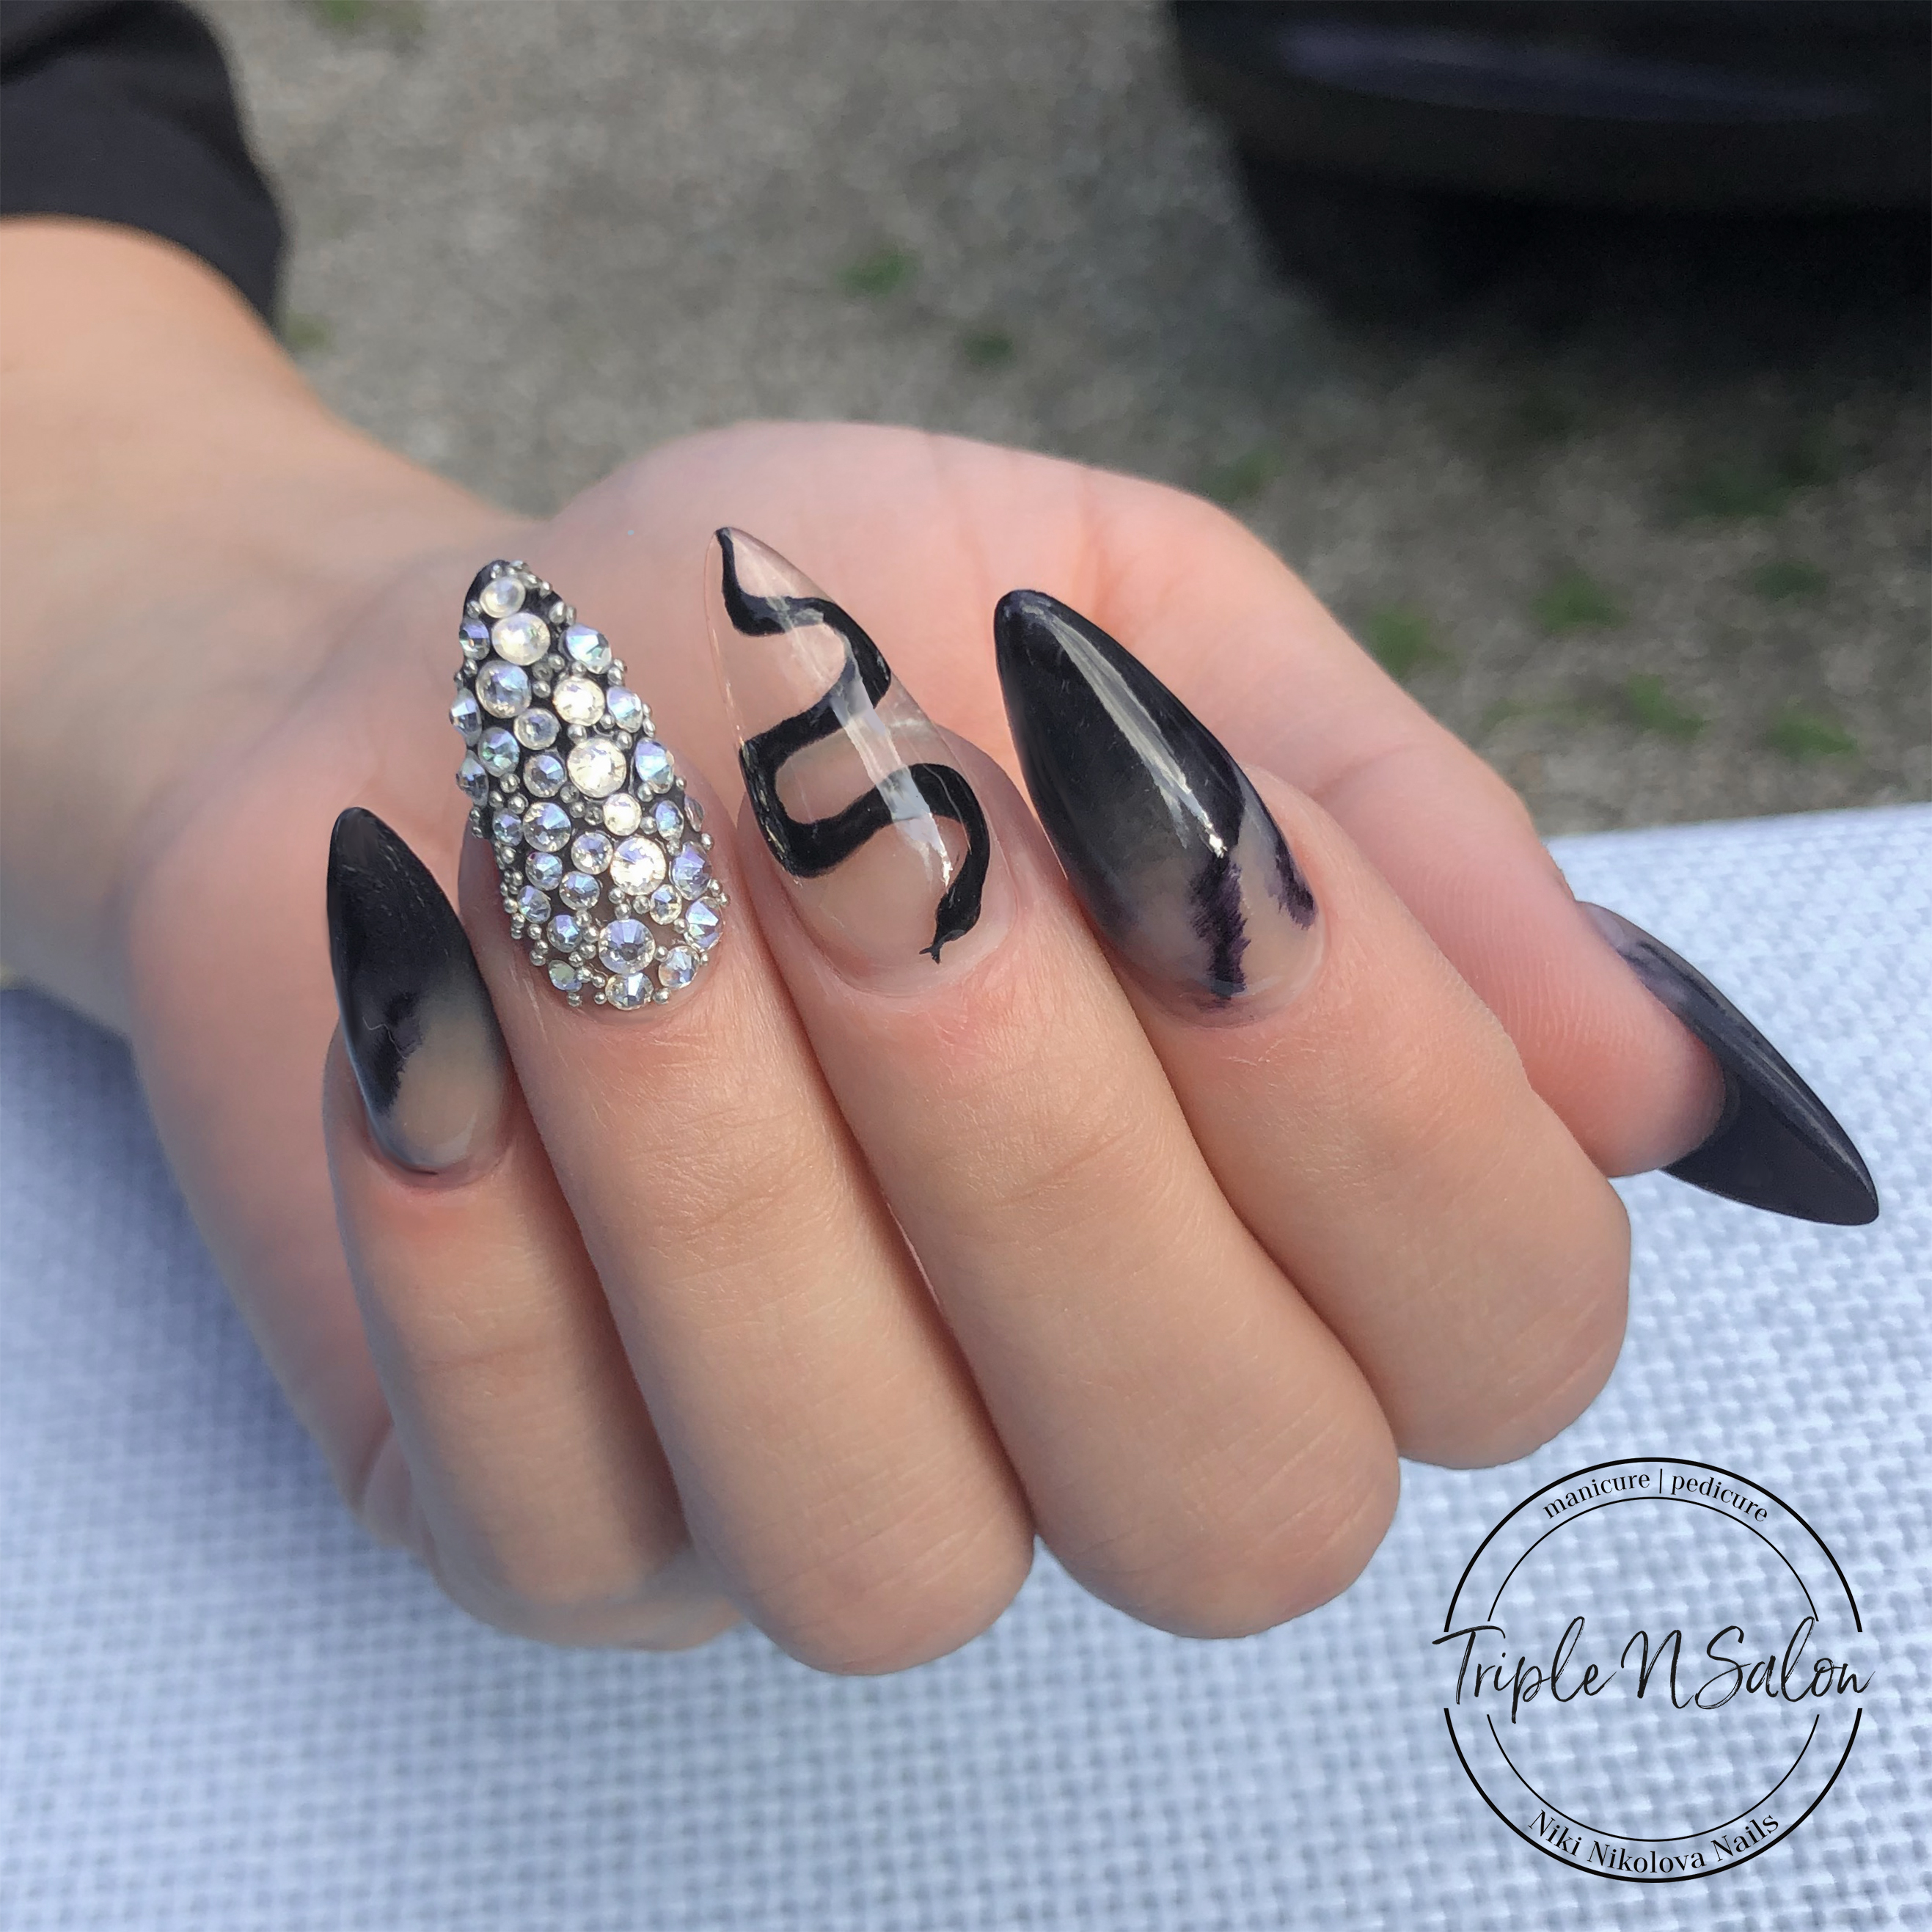 Nail Extensions Types – How to chose?